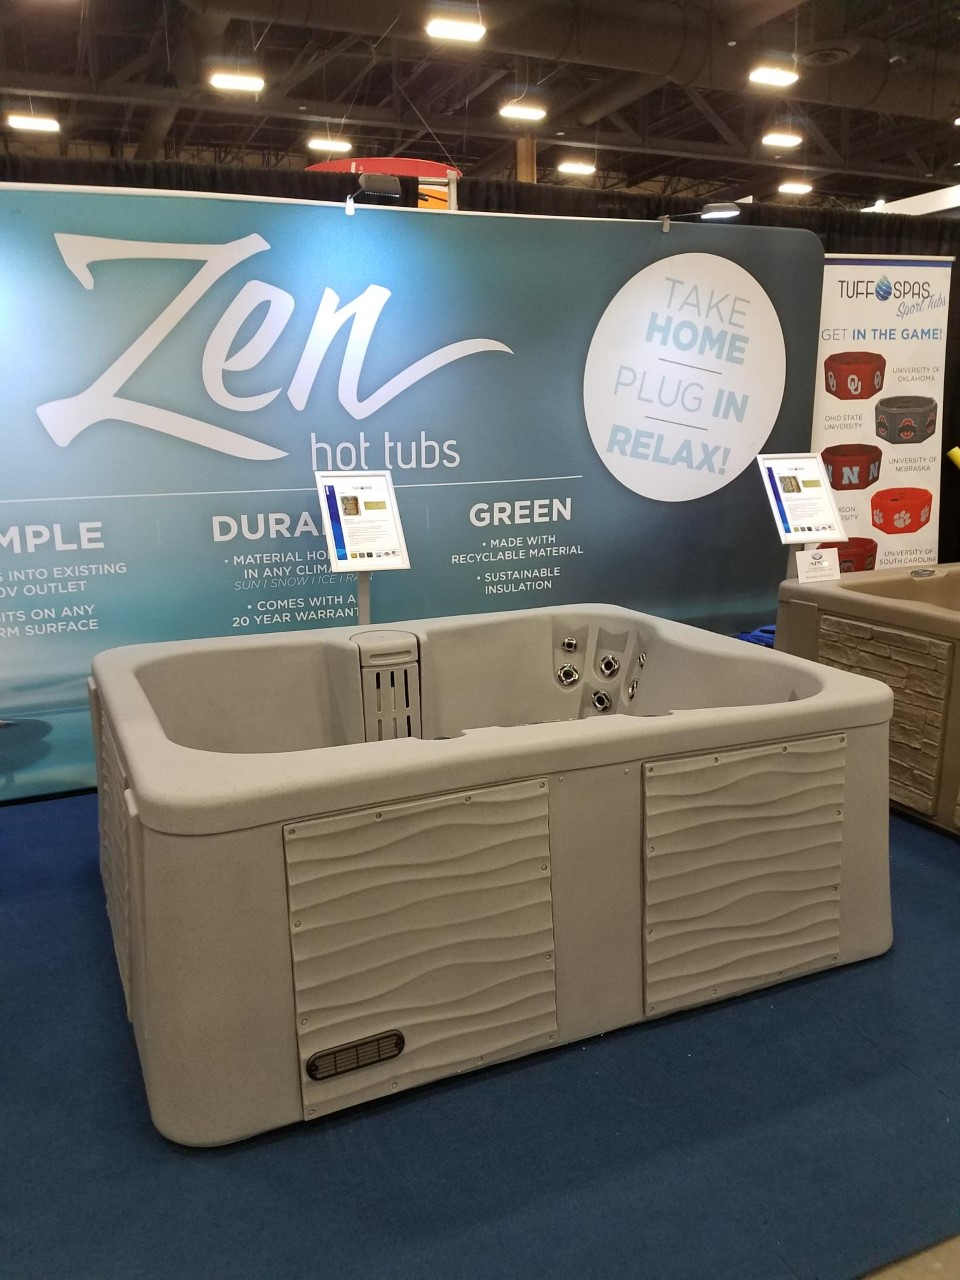 ZEN TUB-4 PERSON